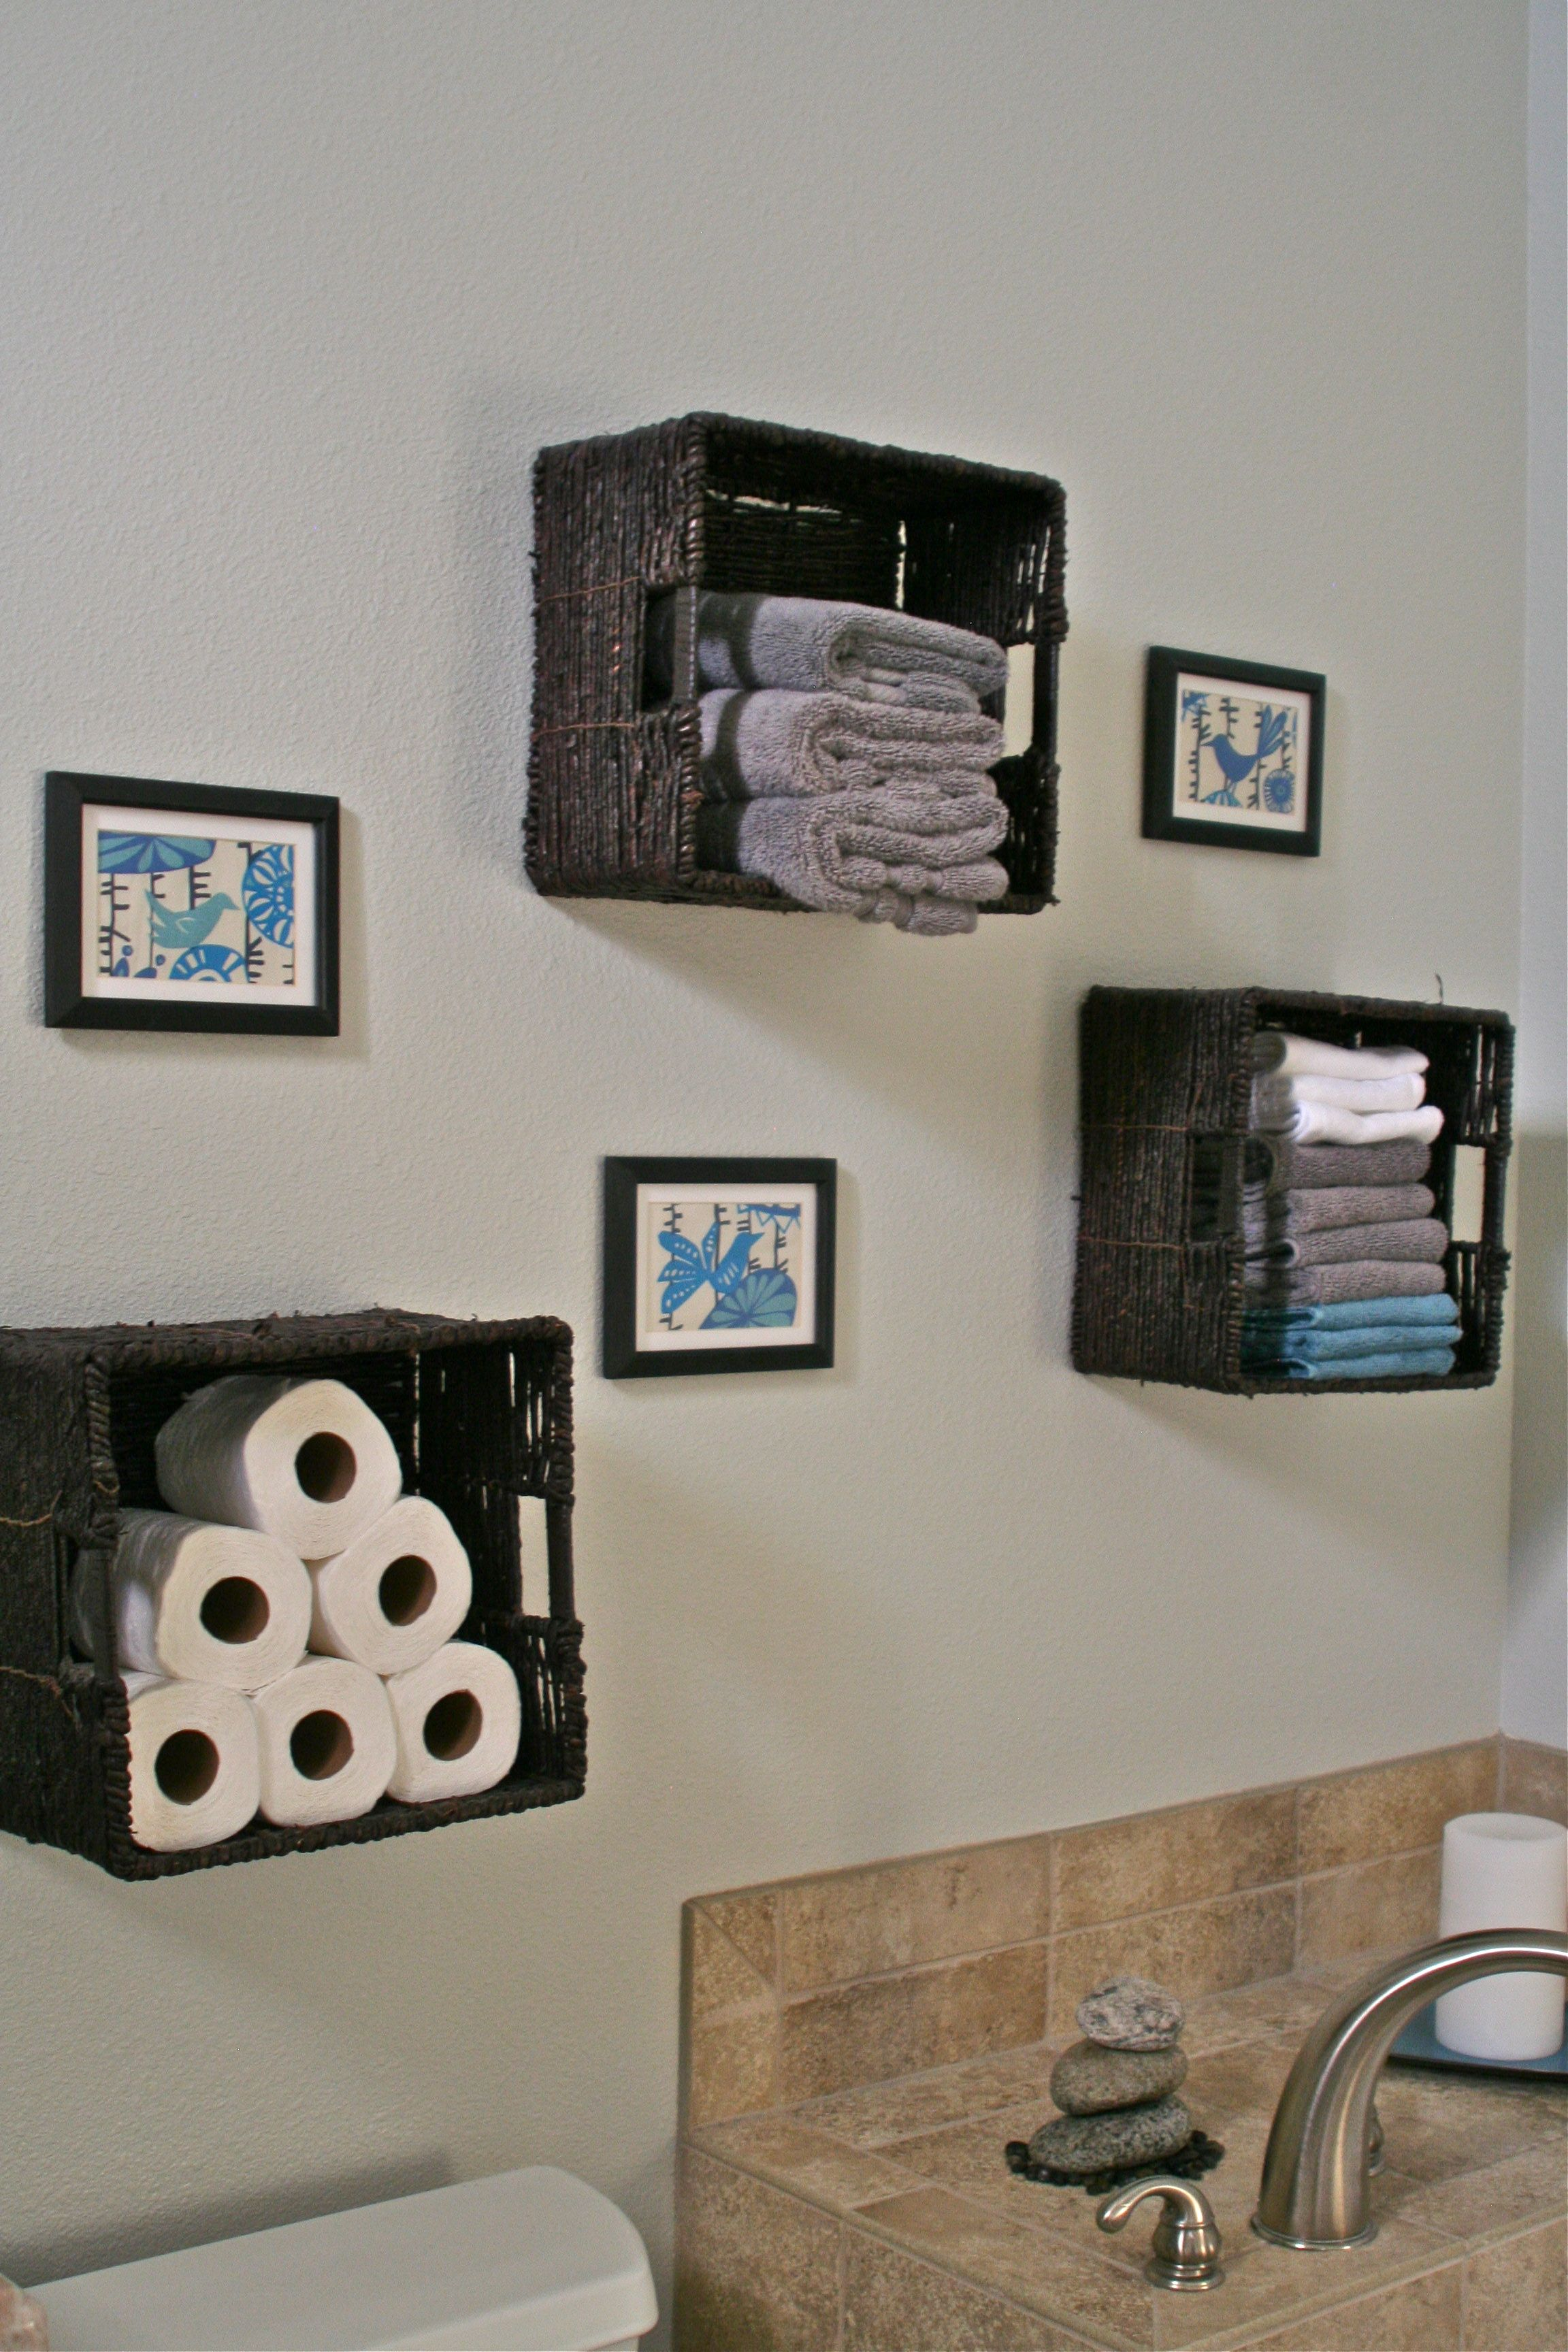 Blukatkraft Diy Quick Easy Wall Art For Bathroom: Baskets For Towels, Toilet Paper Etc